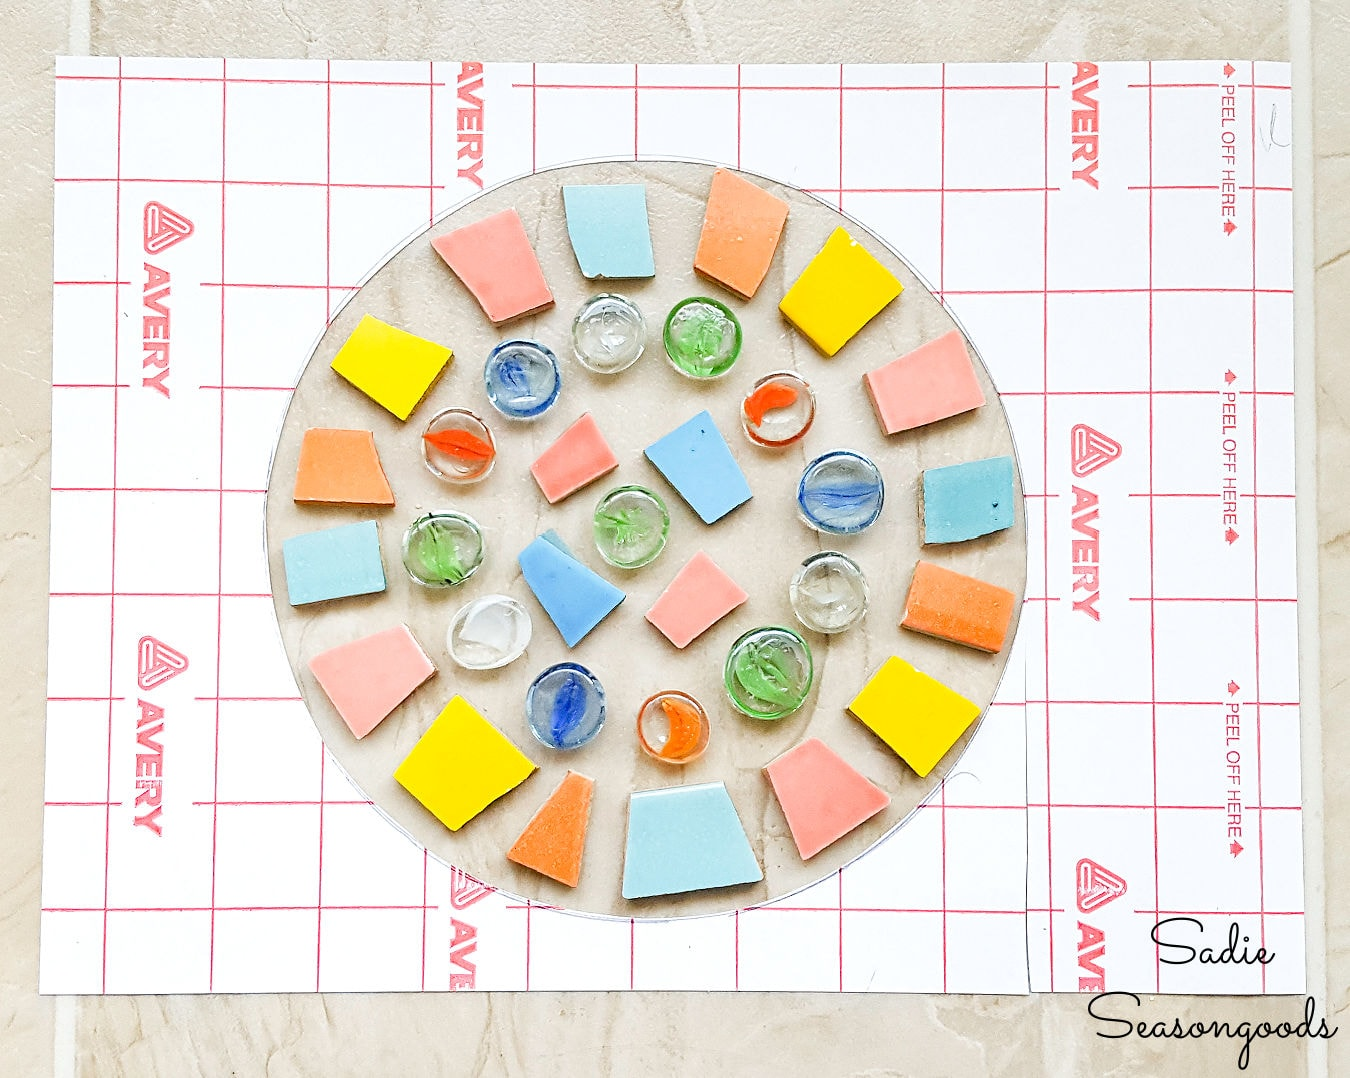 Making a mosaic stepping stone with glass gems